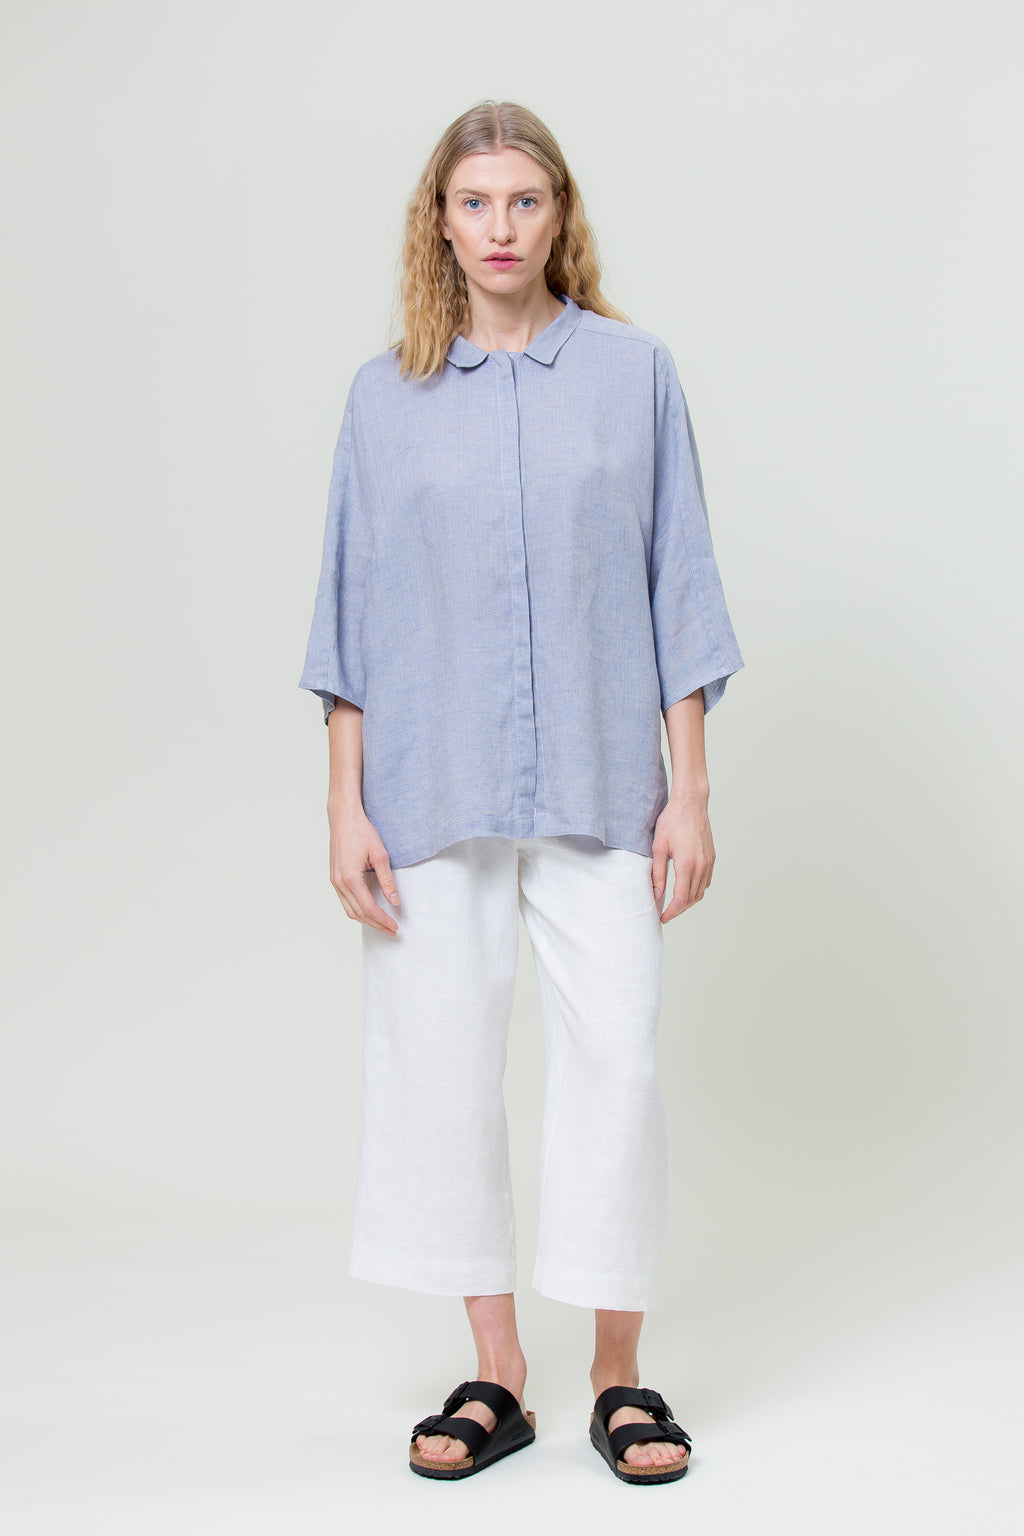 Linen Shirt GINTĖ sunset sky blue